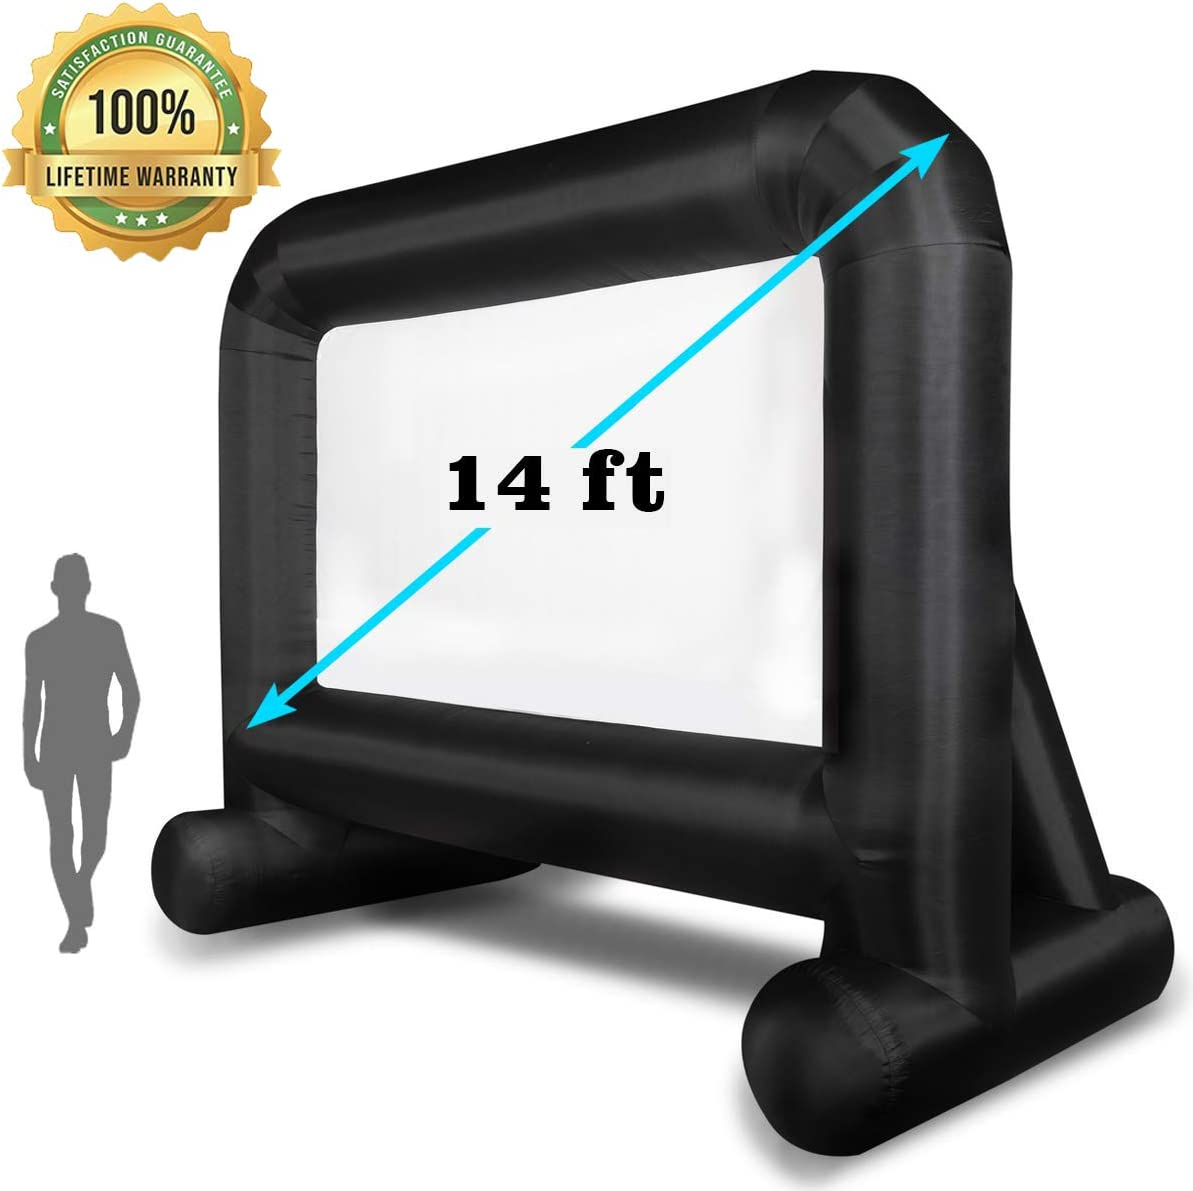 OUTTOY14 FT Inflatable Movie Screen Blow up Mega Movie Projection Outdoor Screen